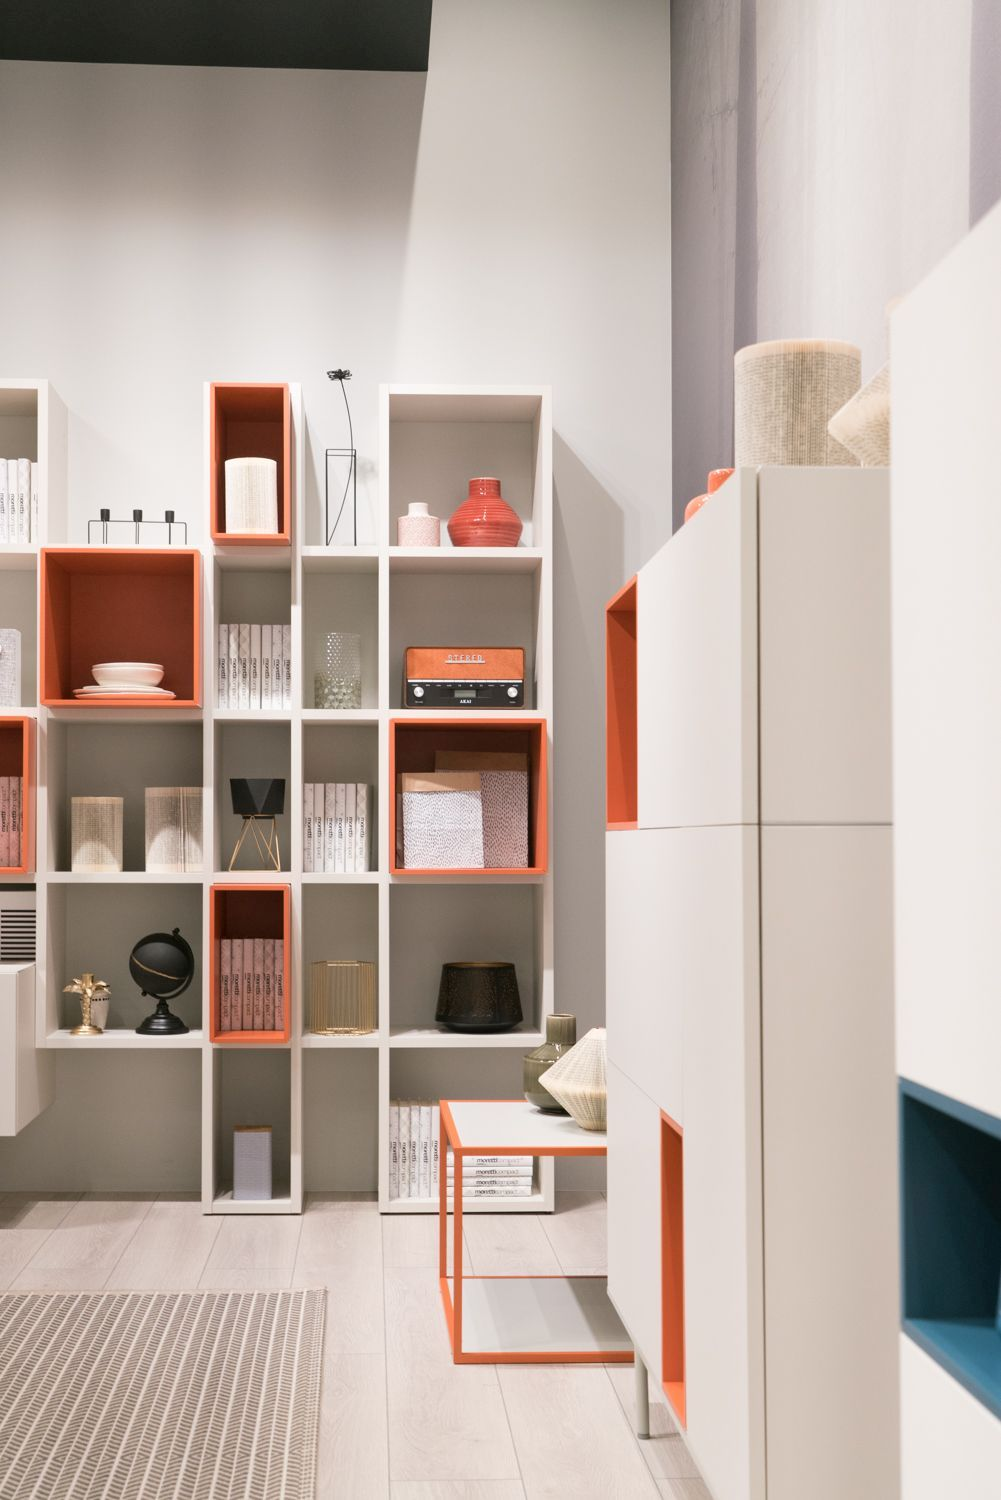 Most shelving ideas can be adapted and customized to suit a certain type of space or a style